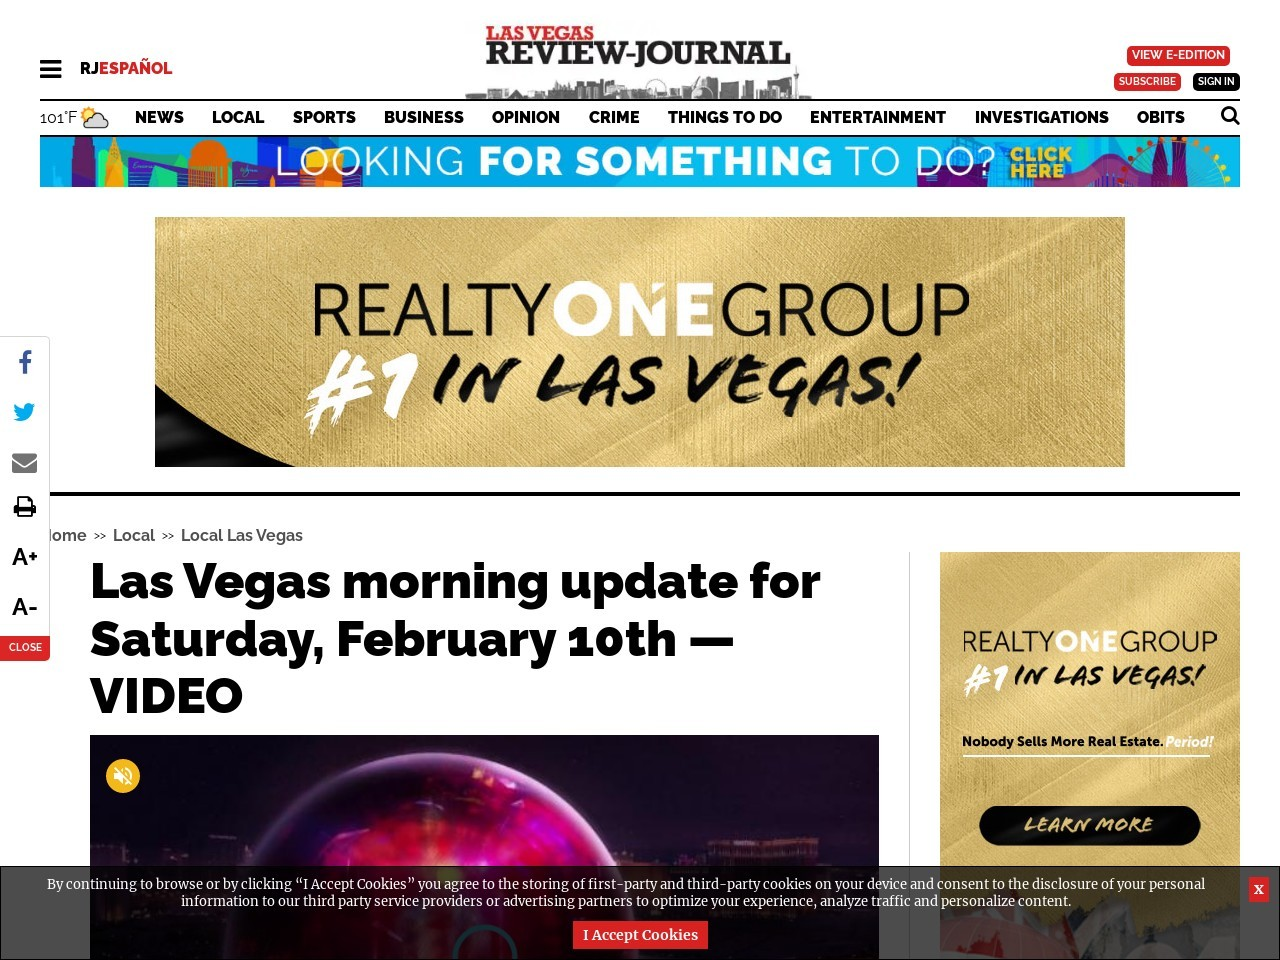 Las Vegas morning update for Saturday, February 10th — VIDEO